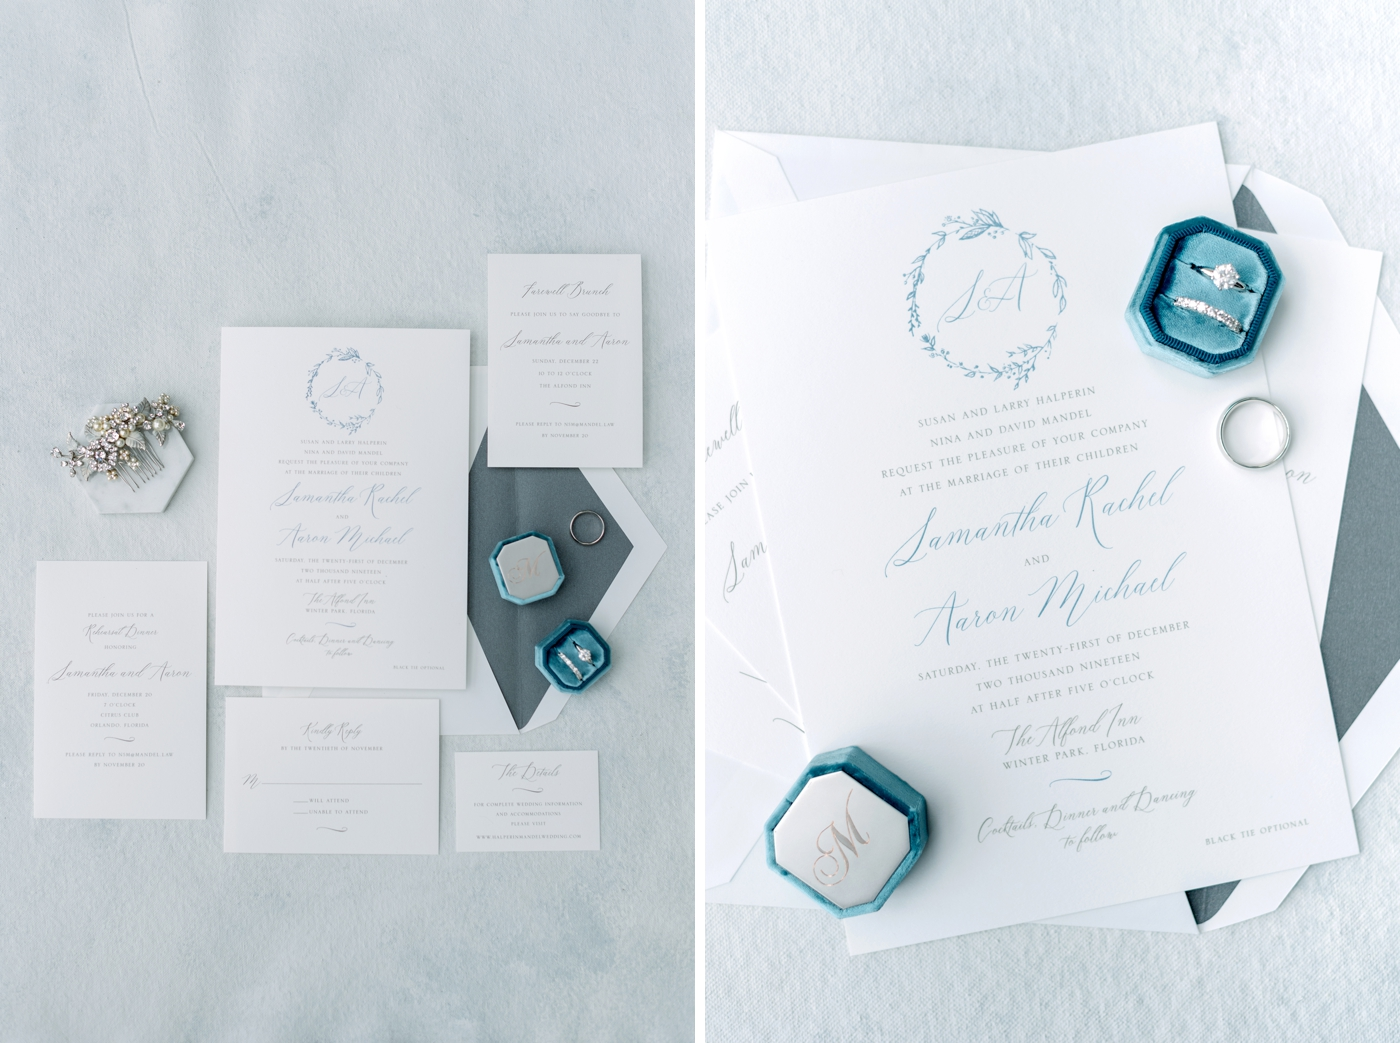 maureen hall invitations